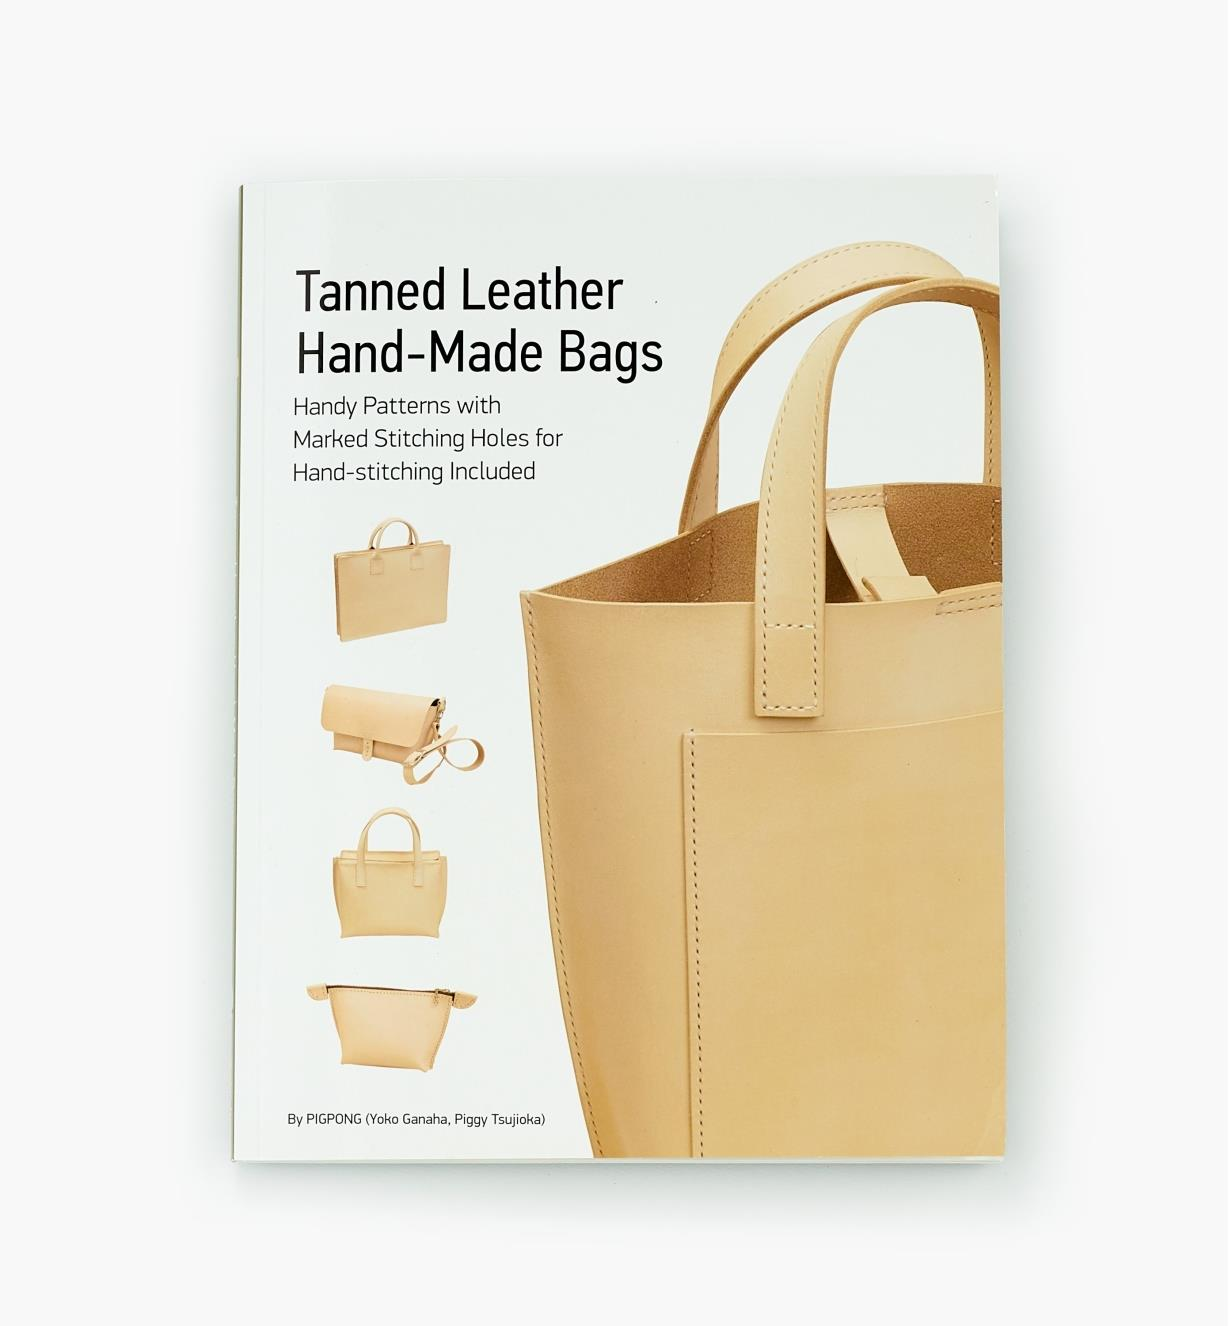 21L2011 - Tanned Leather Hand-Made Bags